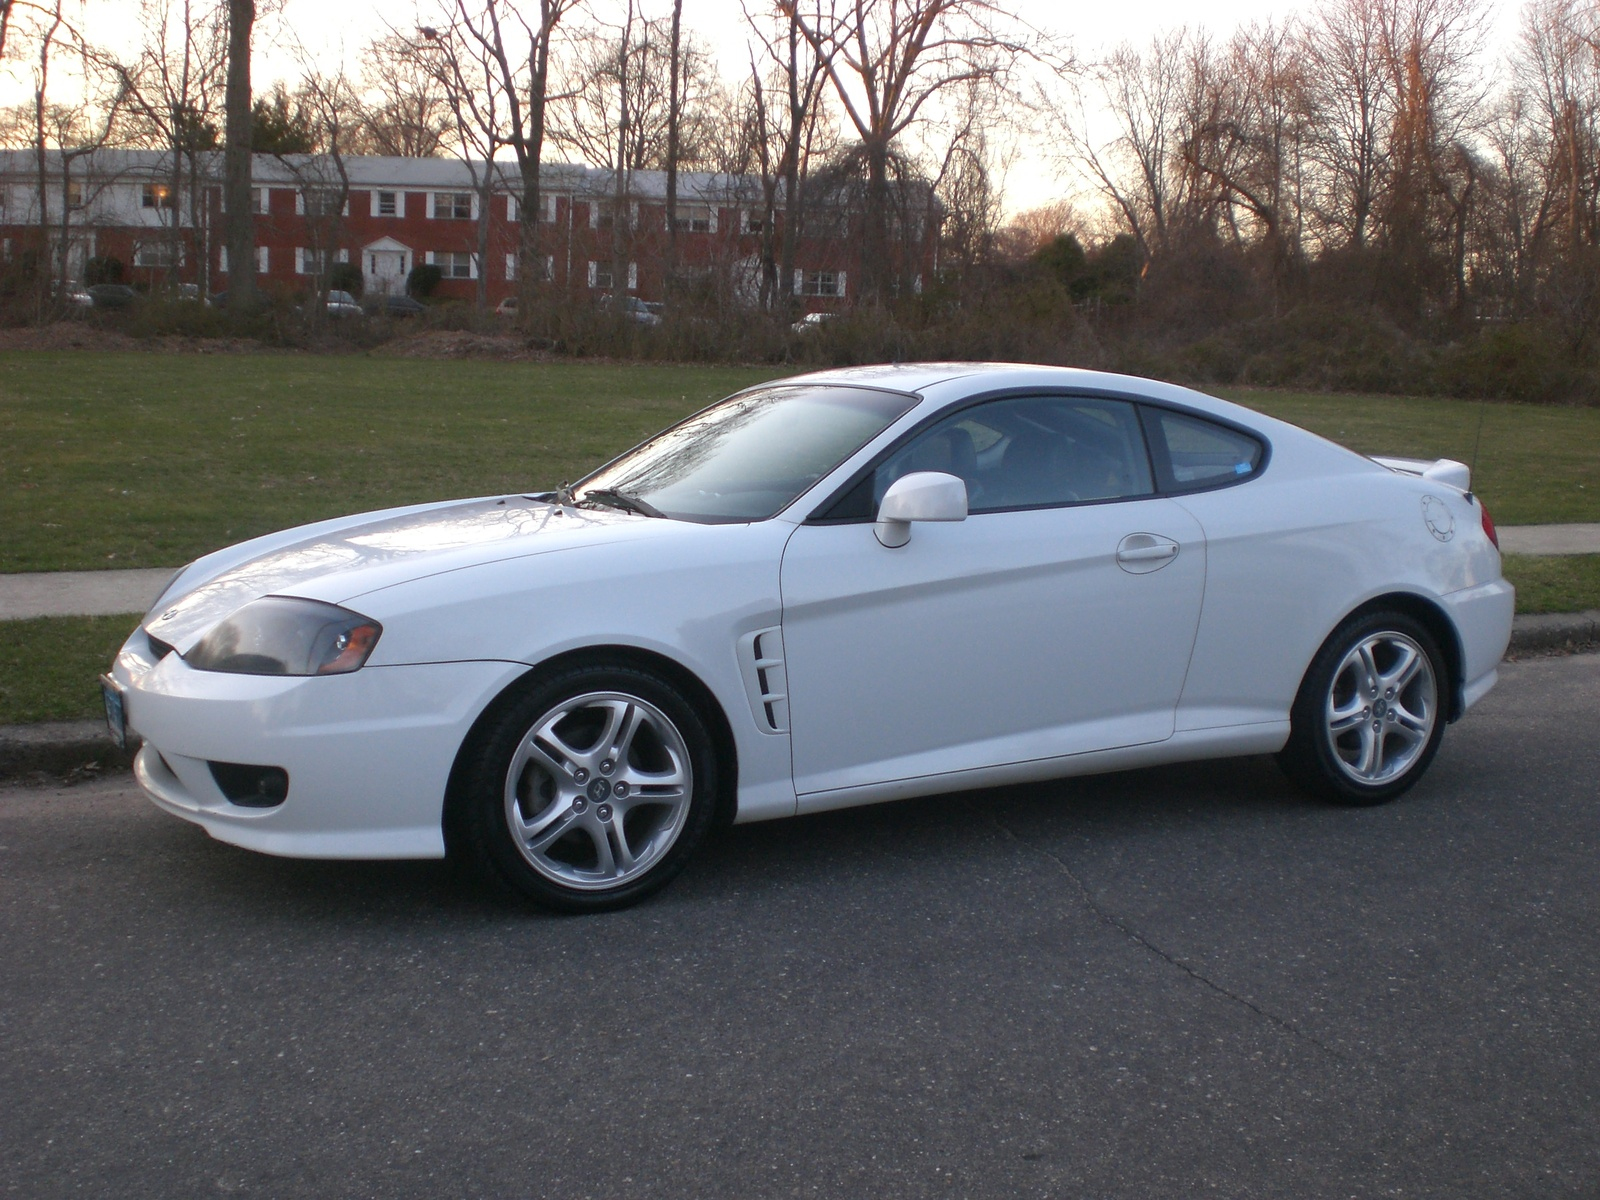 Picture of 2005 Hyundai Tiburon GT